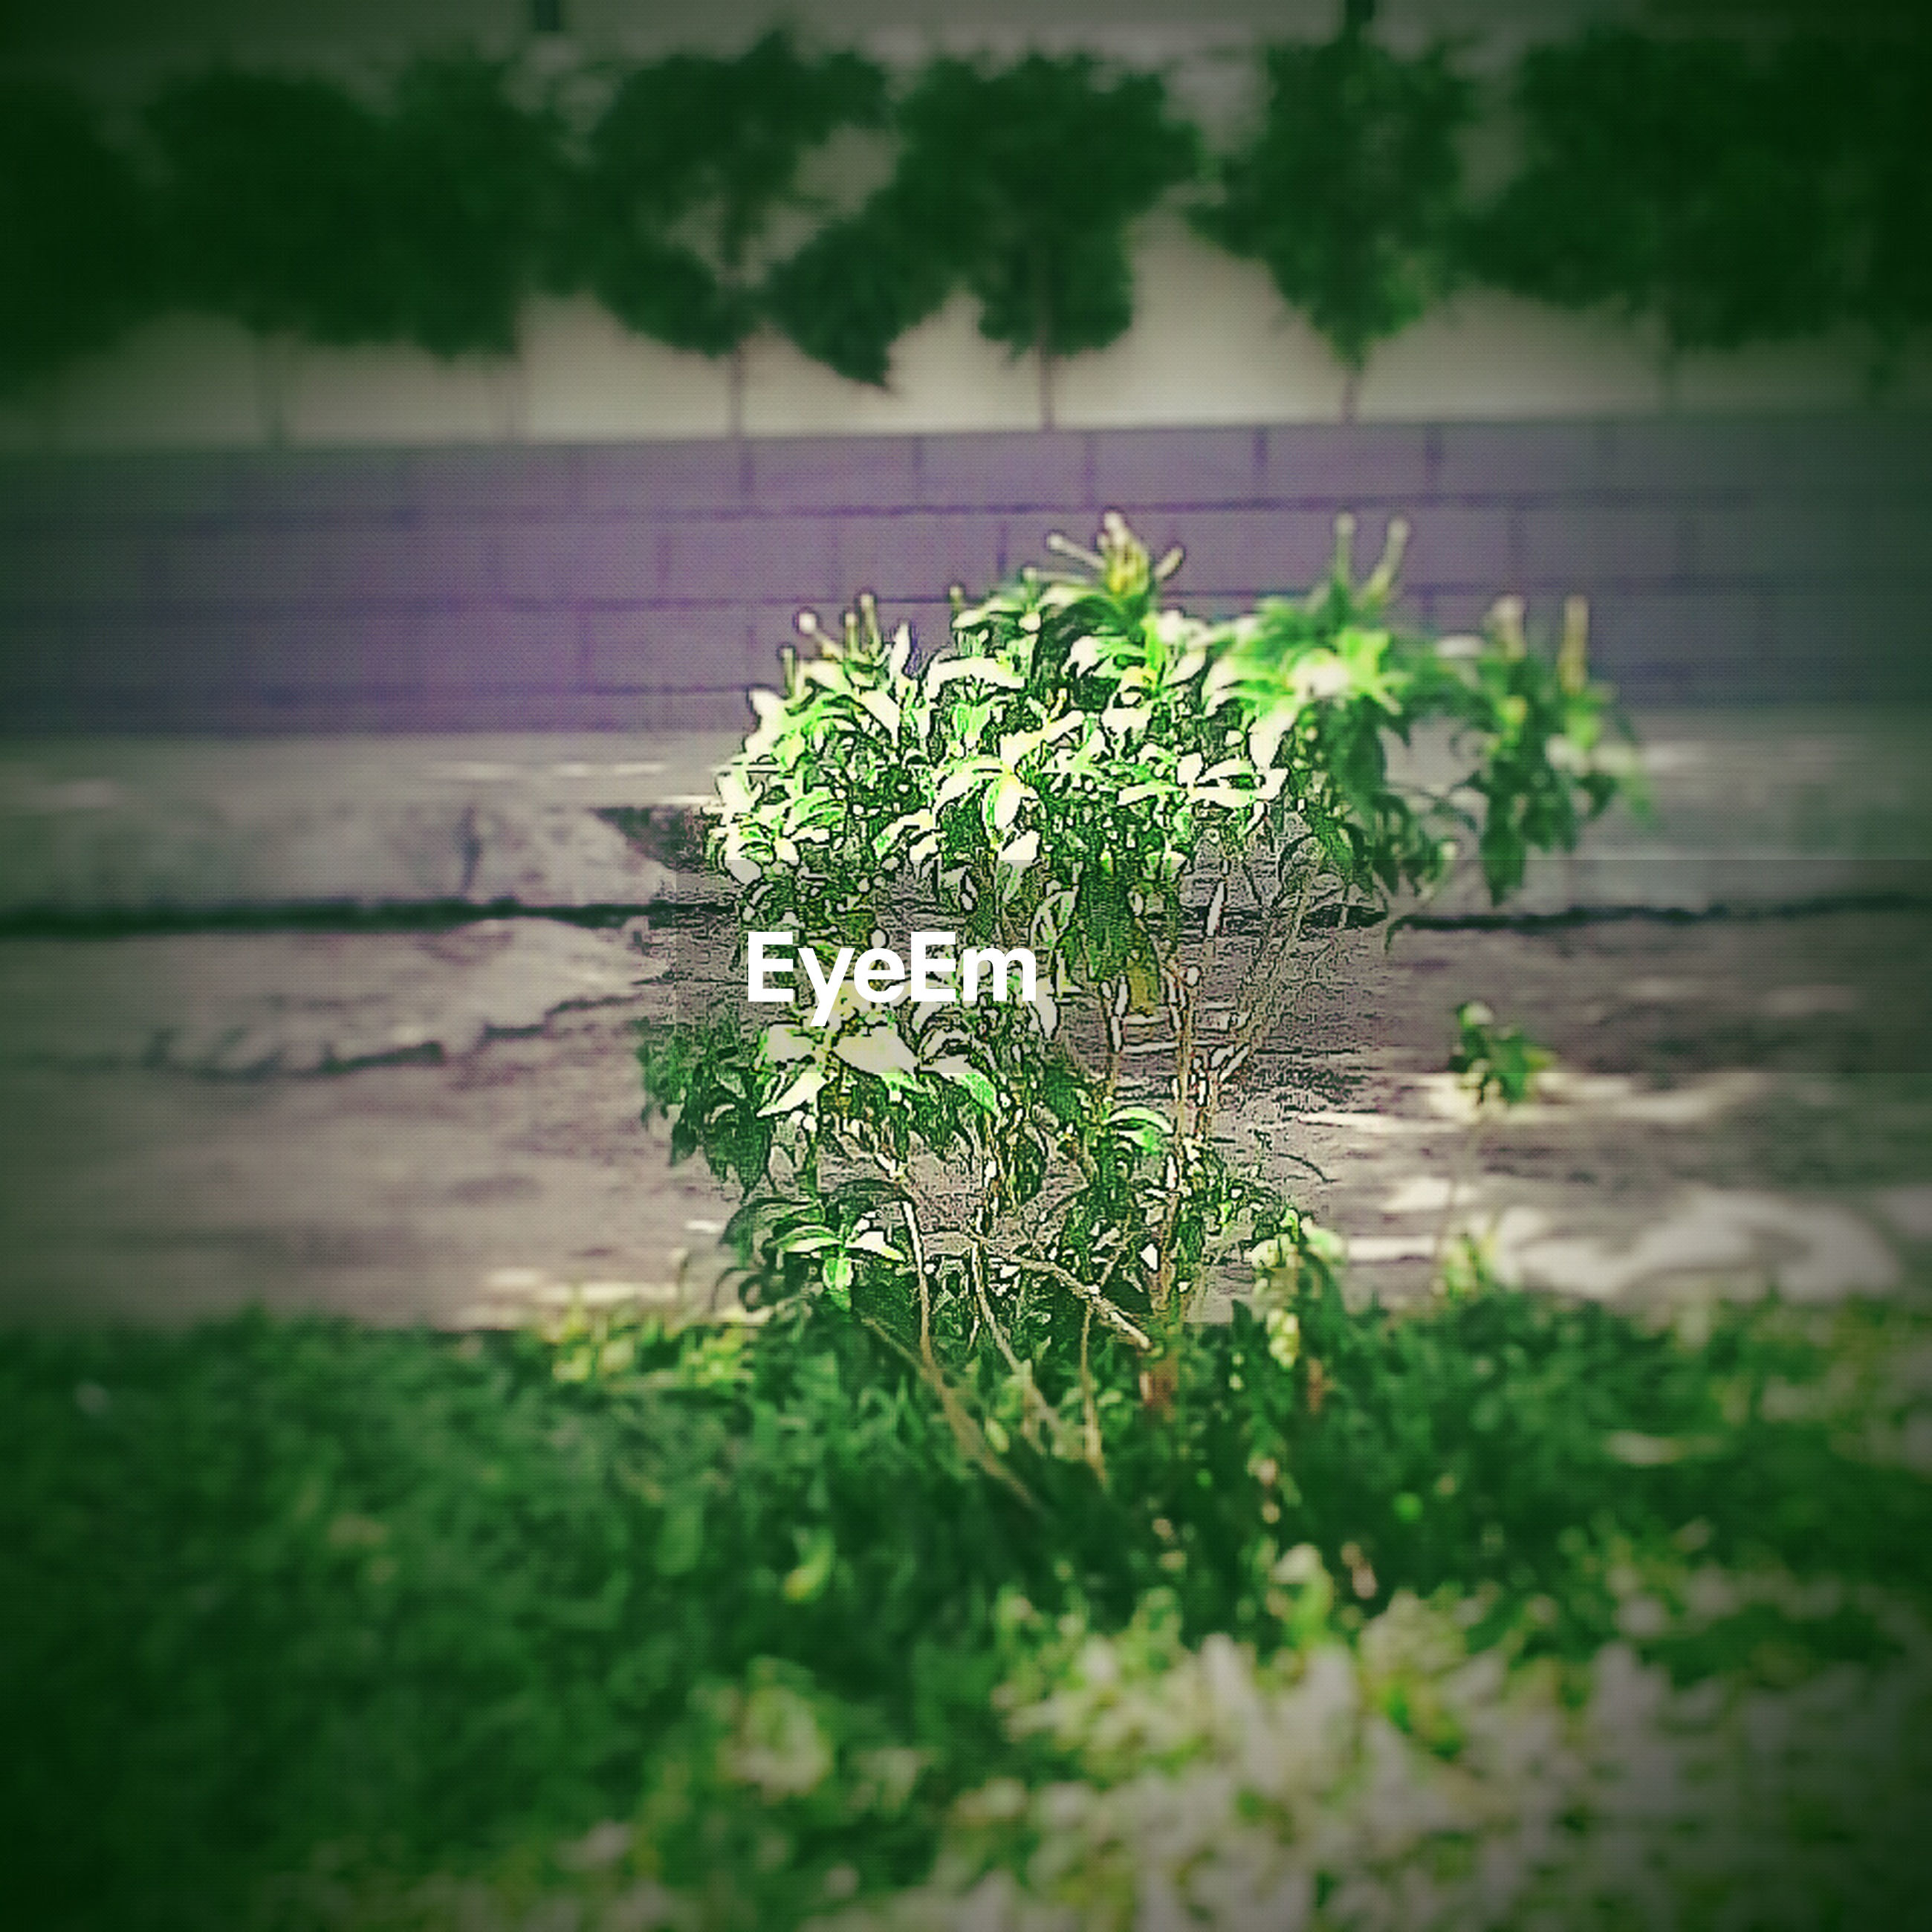 green color, growth, plant, selective focus, nature, close-up, leaf, focus on foreground, growing, freshness, green, beauty in nature, outdoors, day, no people, water, grass, potted plant, fragility, high angle view